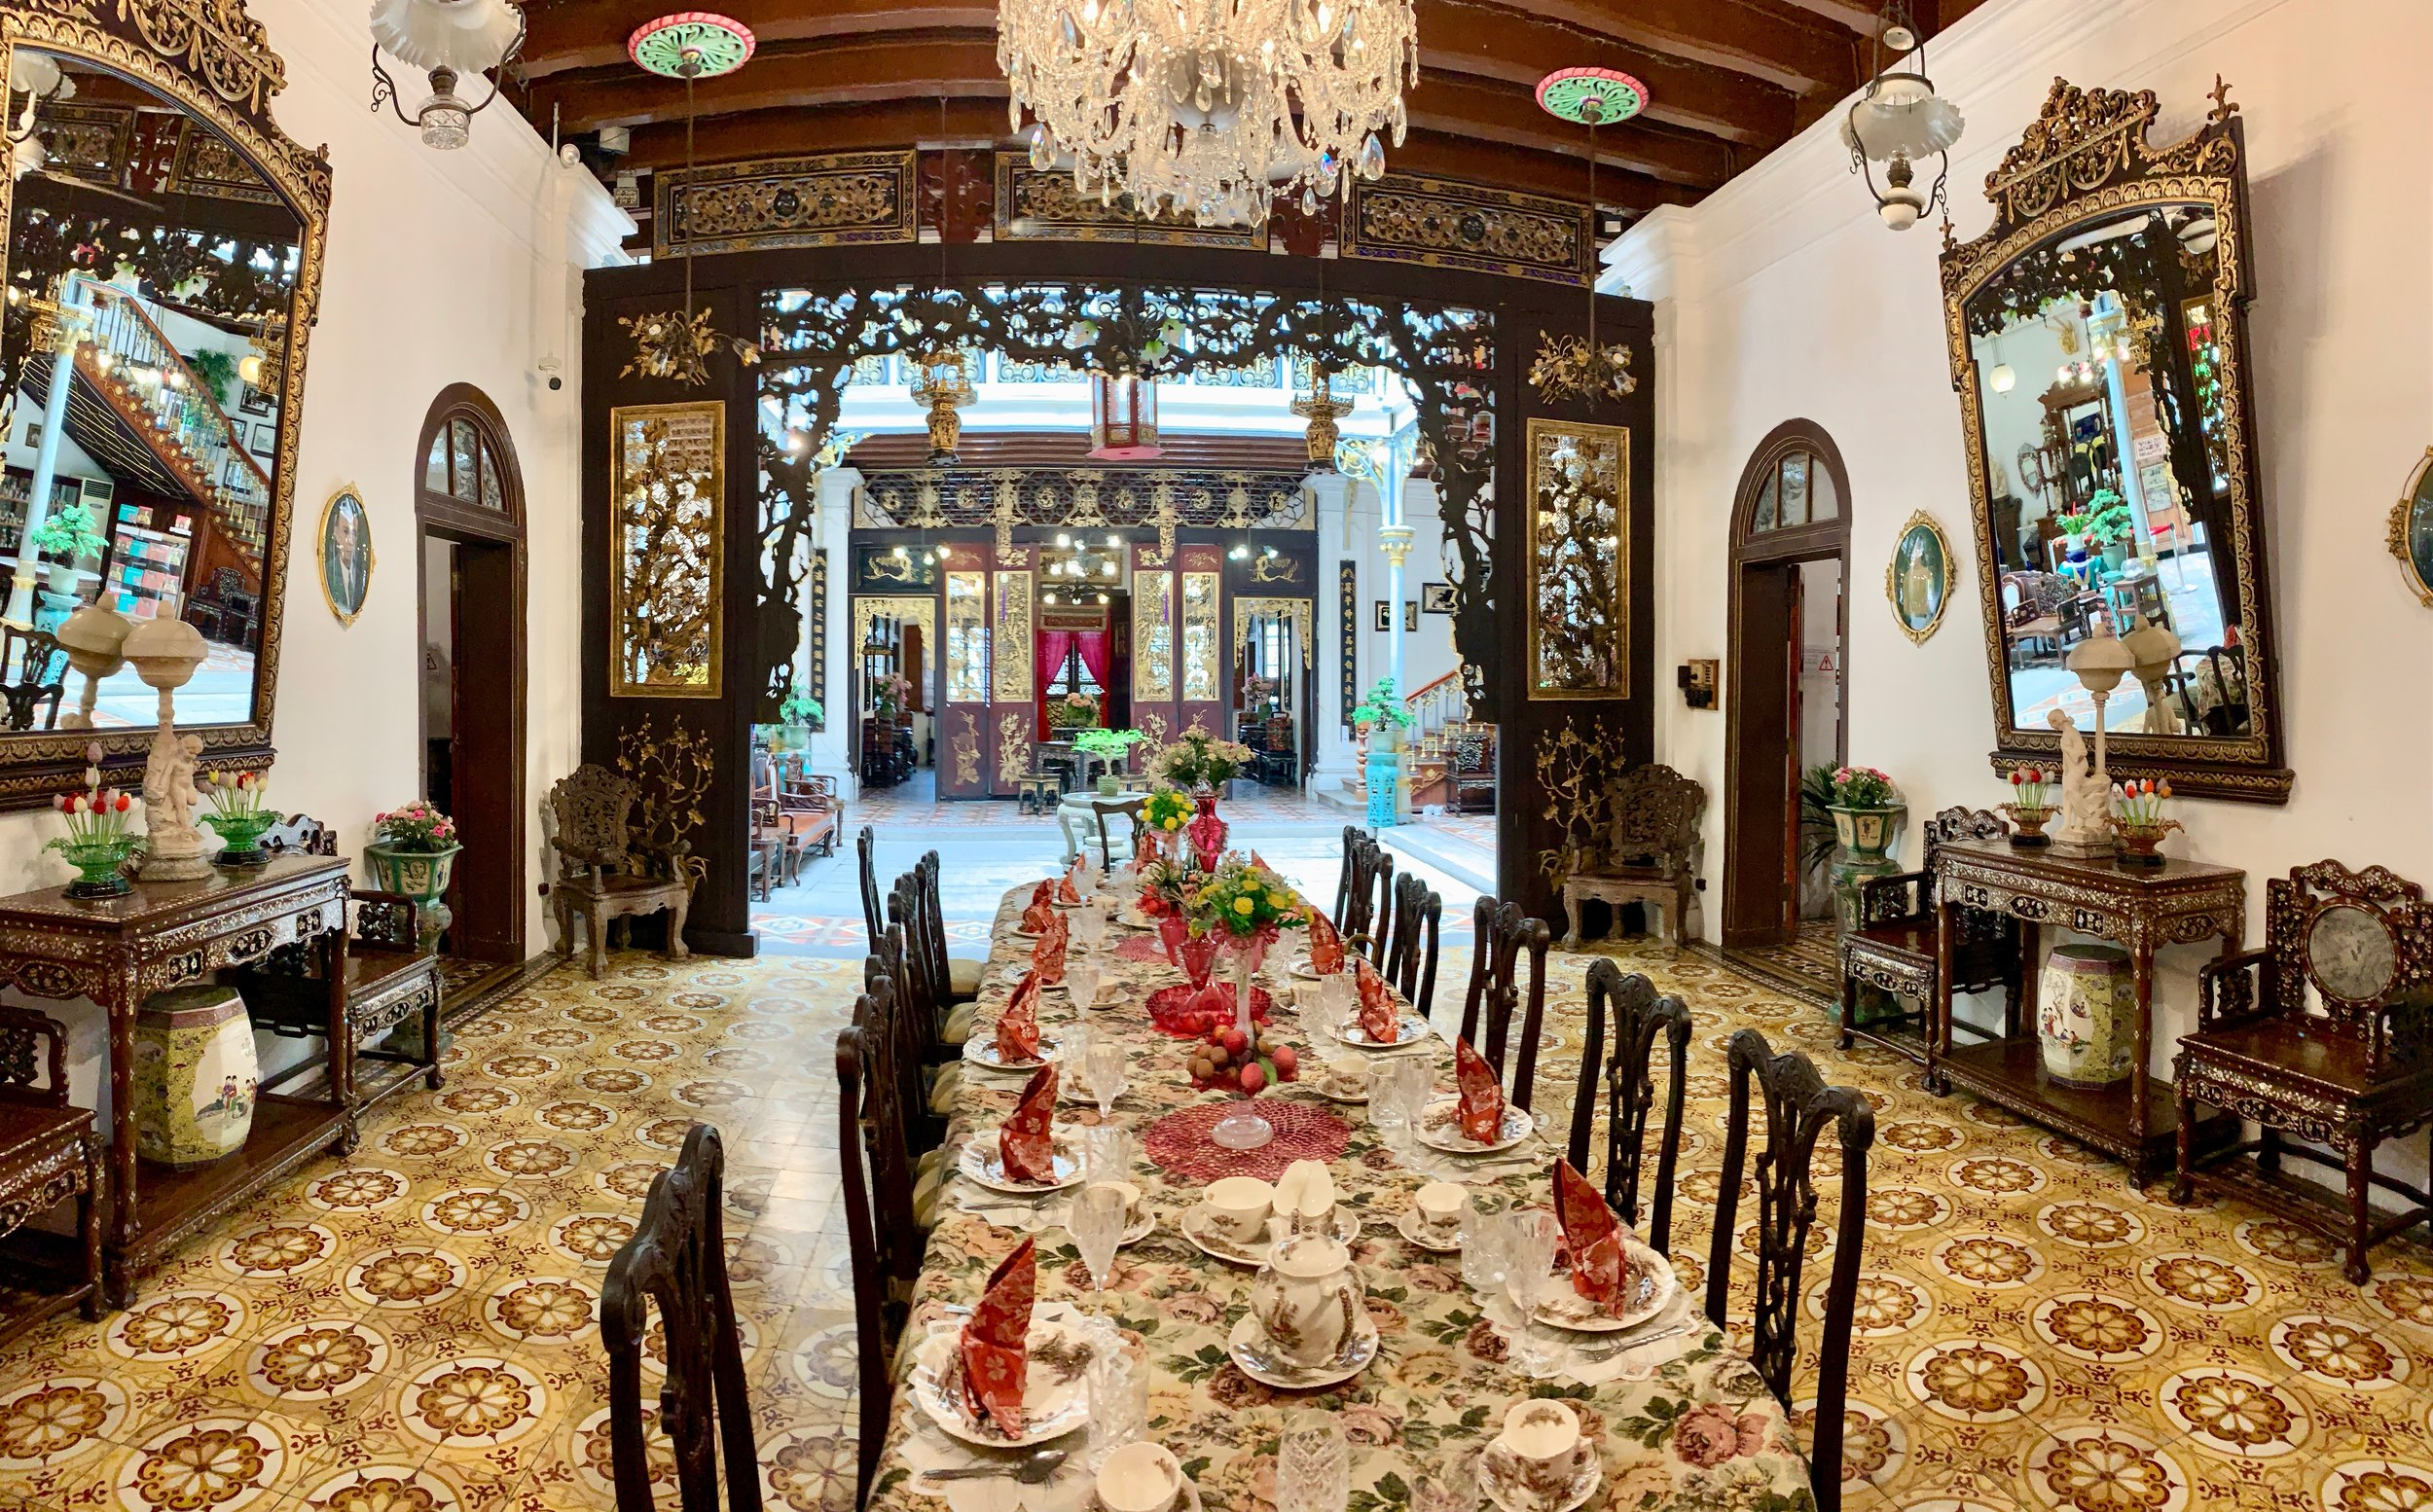 Formal dinning room, looking toward the interior courtyard. The style of tile is traditional Peranakan.